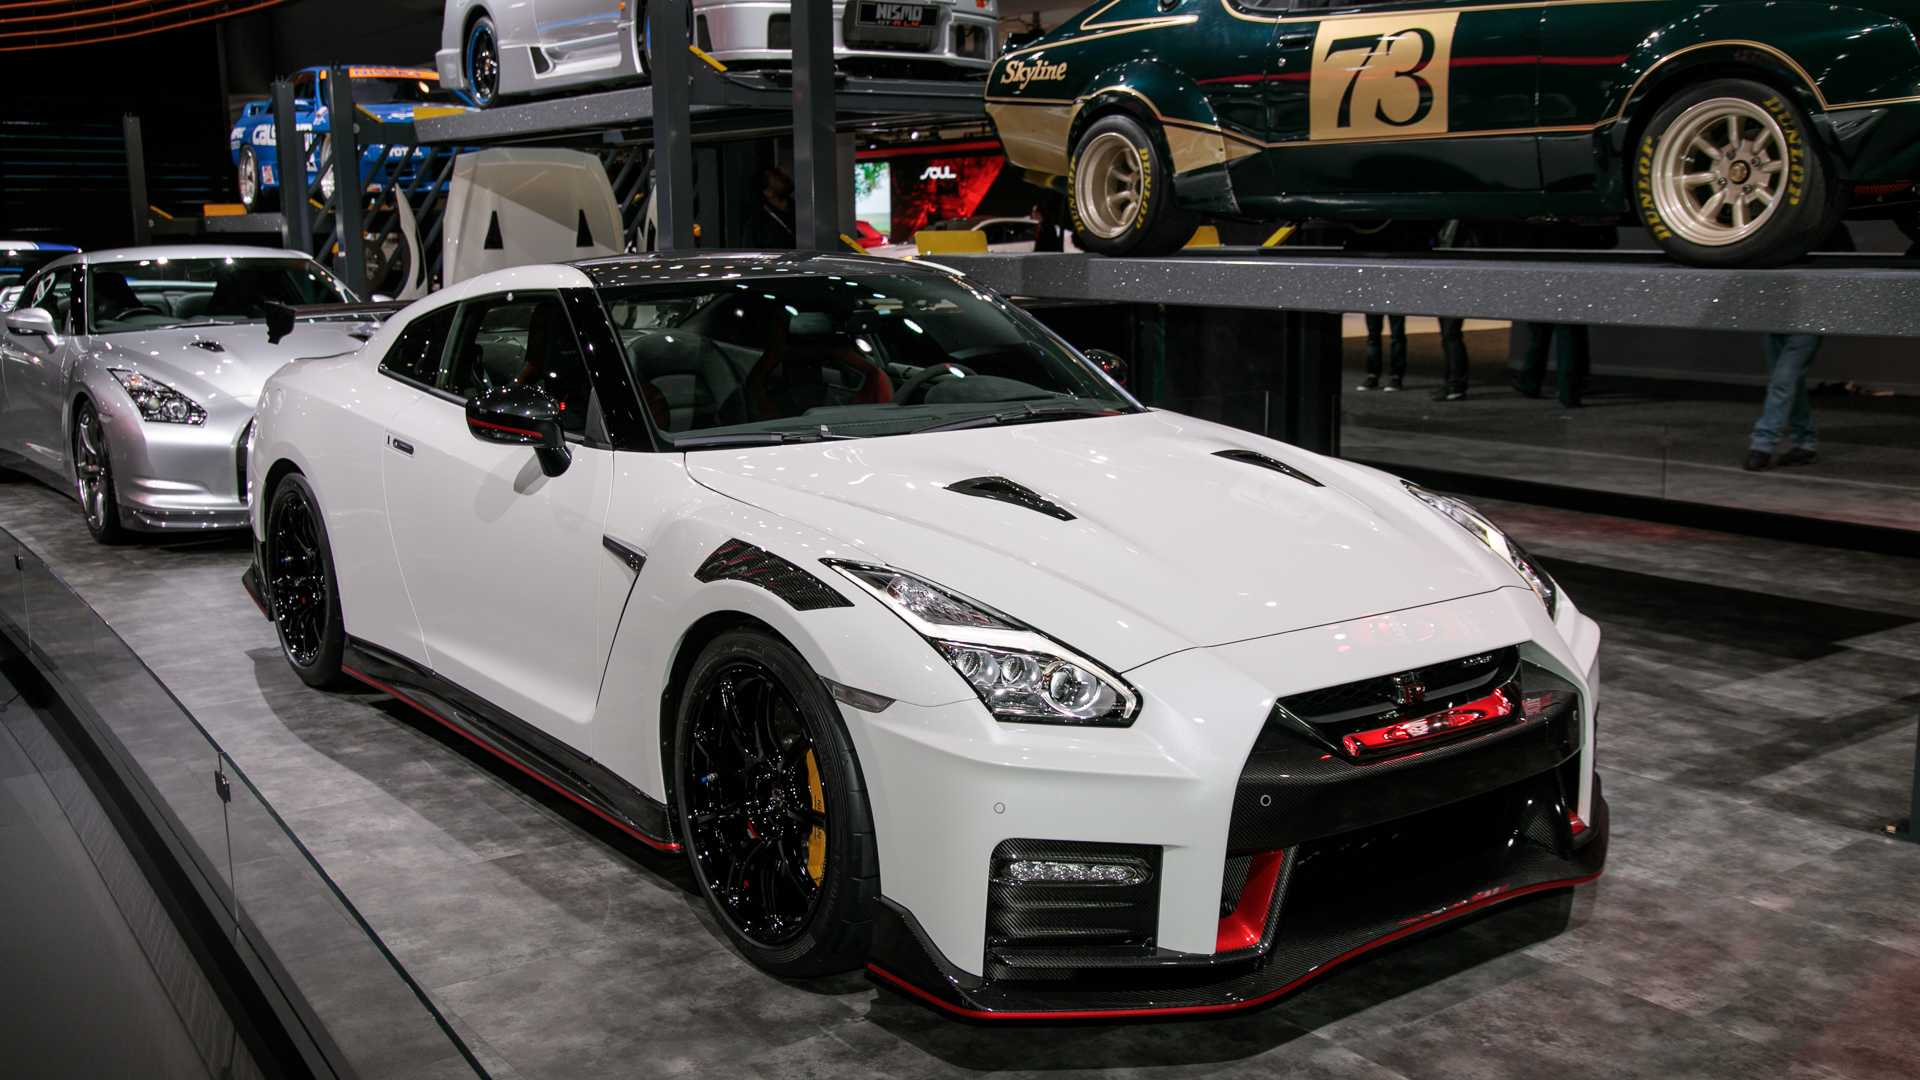 79 The Best Nissan Gt R 36 2020 Price Overview